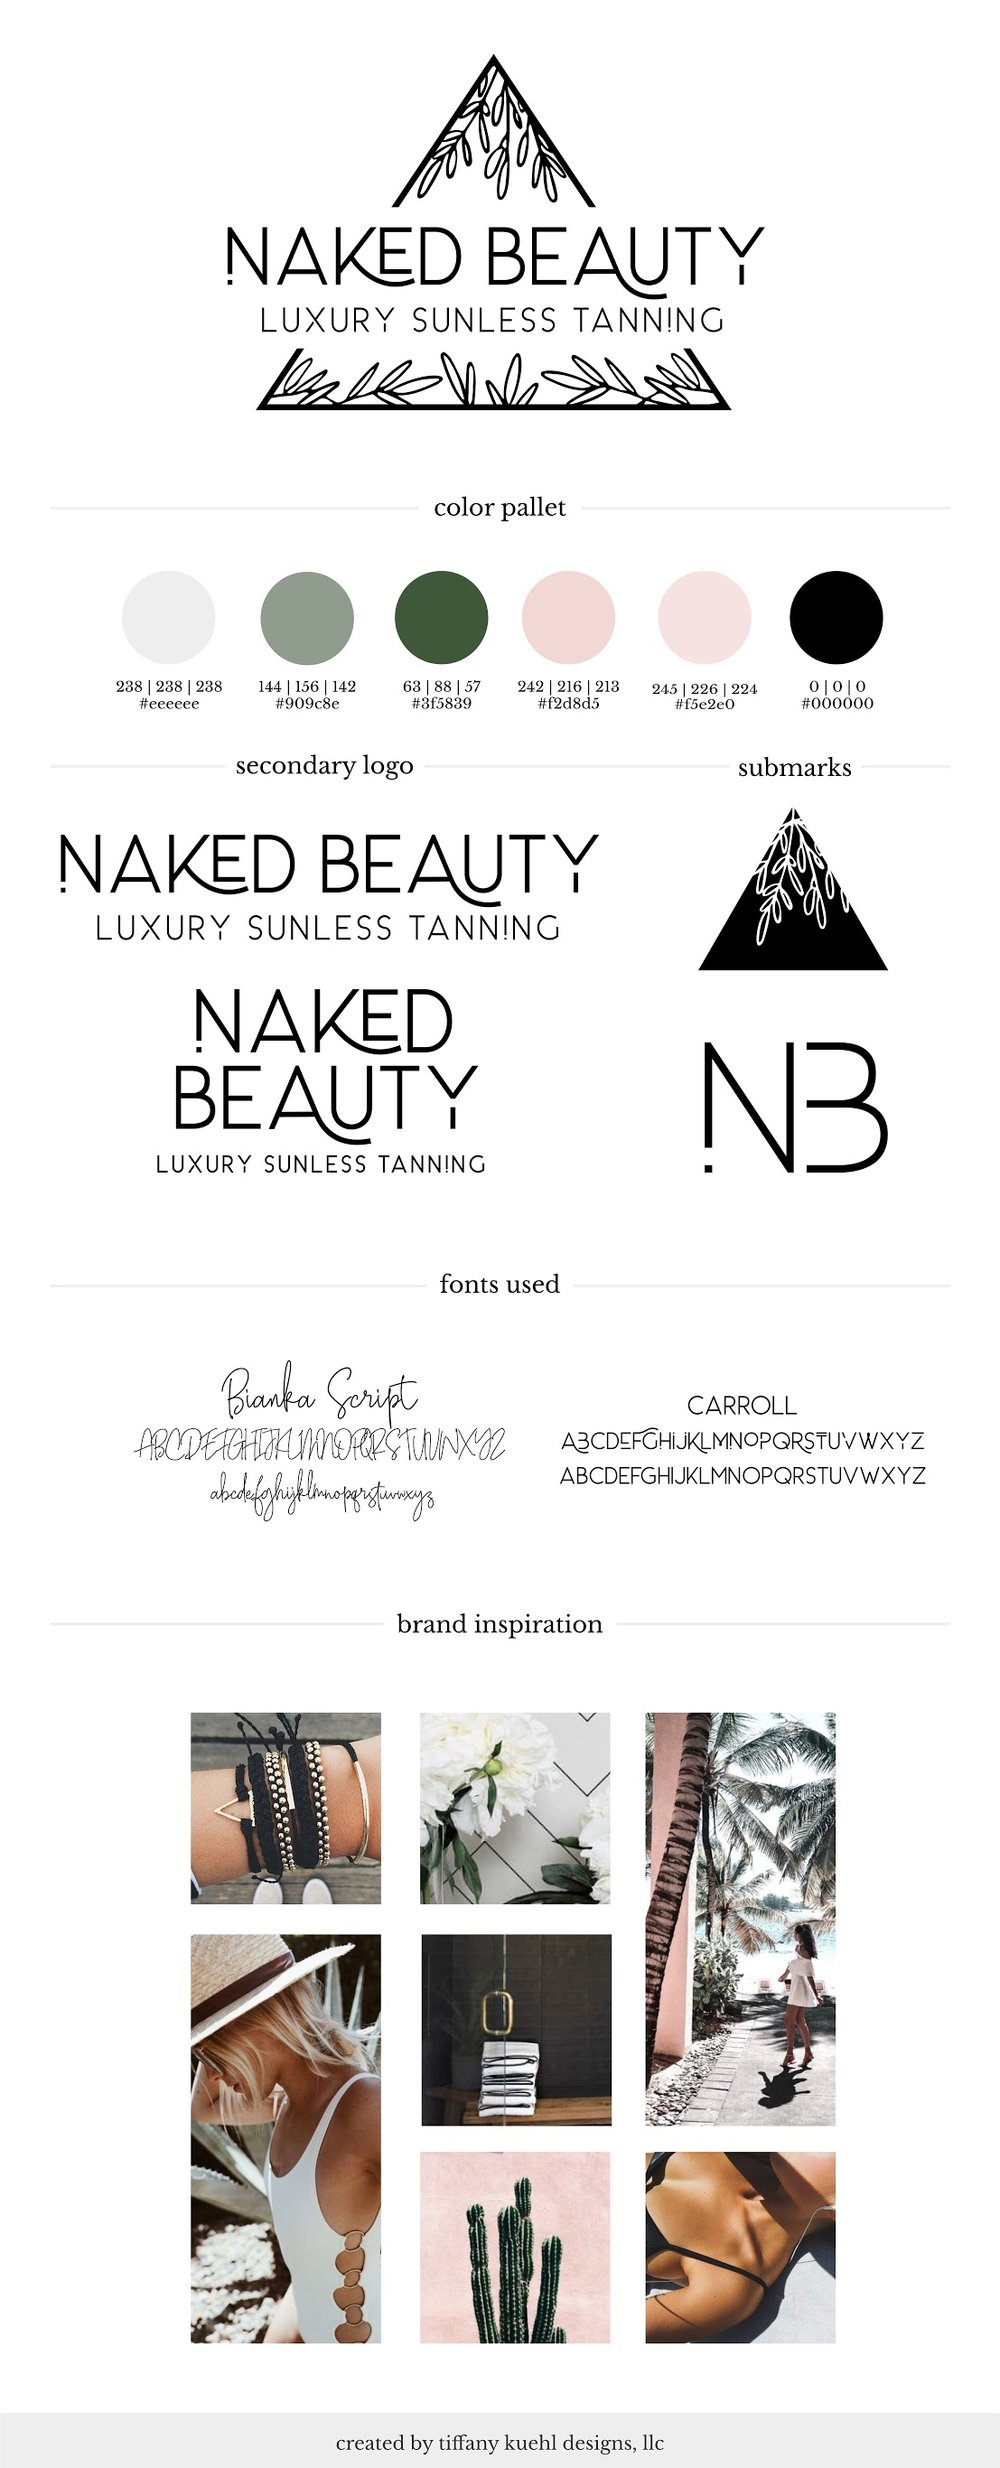 Naked Beauty Brand Board | Tiffany Kuehl Designs  Take a look at the final product for the @thenaked_beauty brand! This board pulls together most of the elements that we created for Naked Beauty and it it beautiful!  #branding #moodboard #brandboard #colorinspiration #brandinspiration #luxuriousbranding #custombranding #sunlesstanning